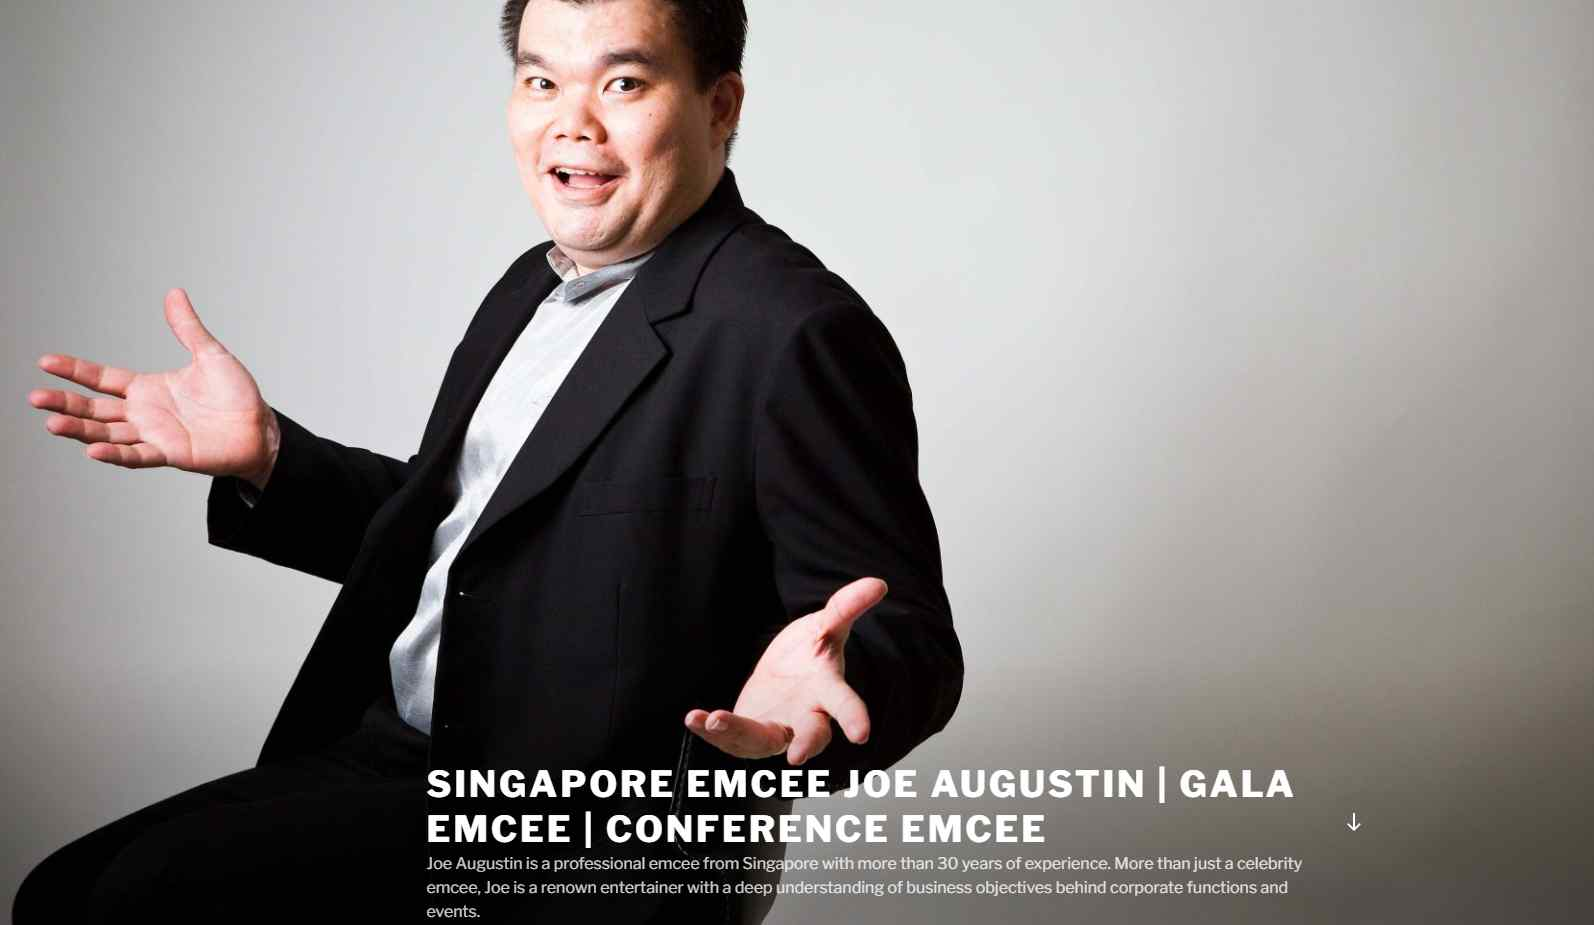 joe augustin The Top Emcees in Singapore